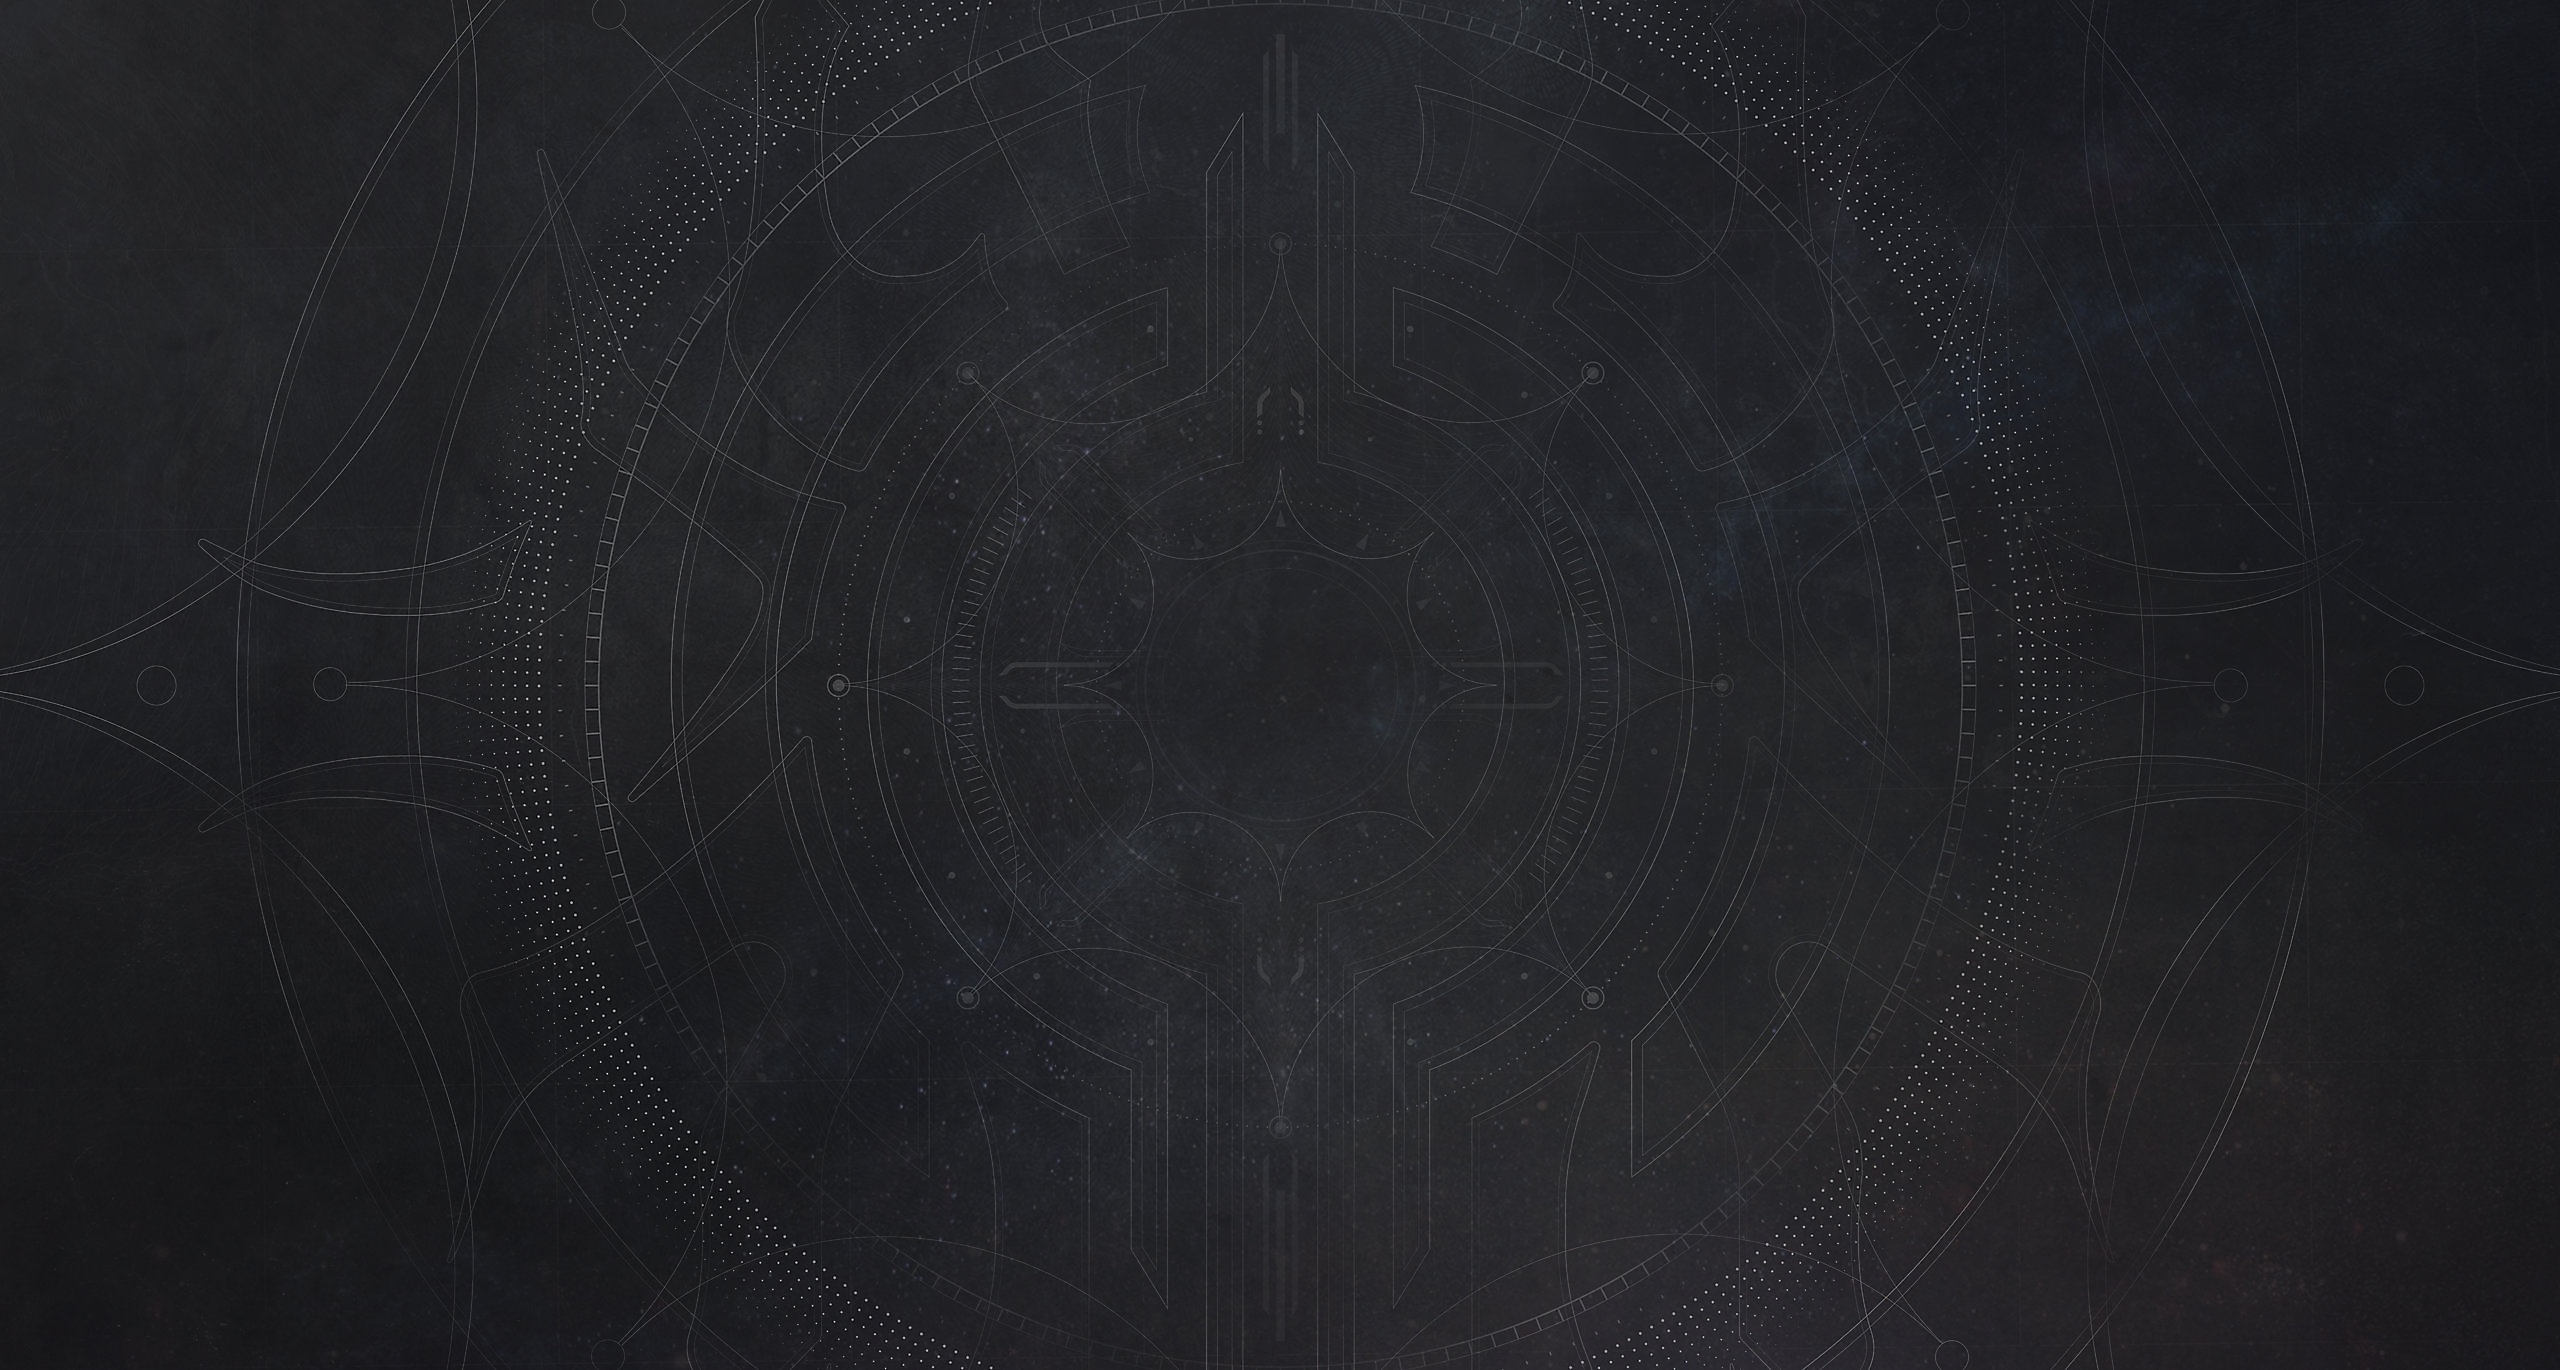 Destiny 2 - Video Gallery Background